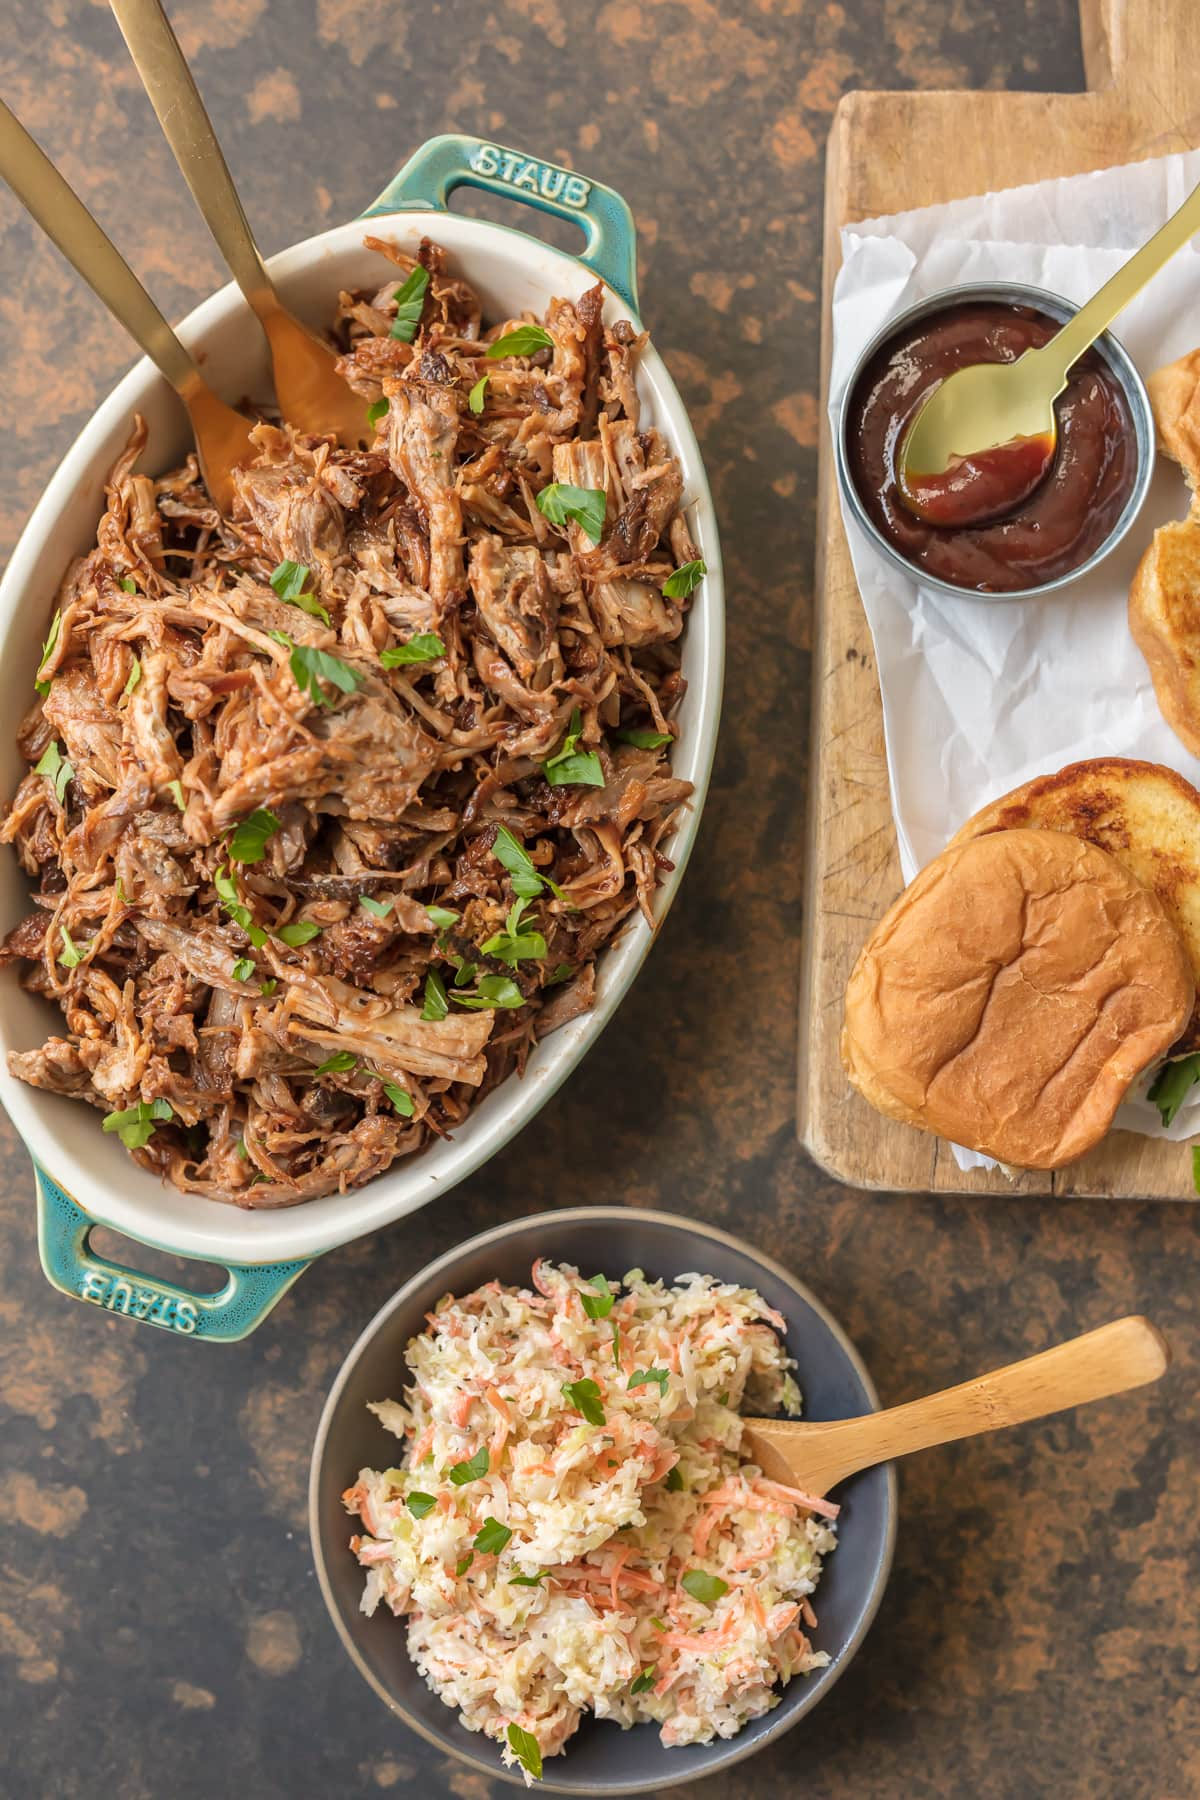 Serving dish filled with BBQ pulled pork, bowl of coleslaw